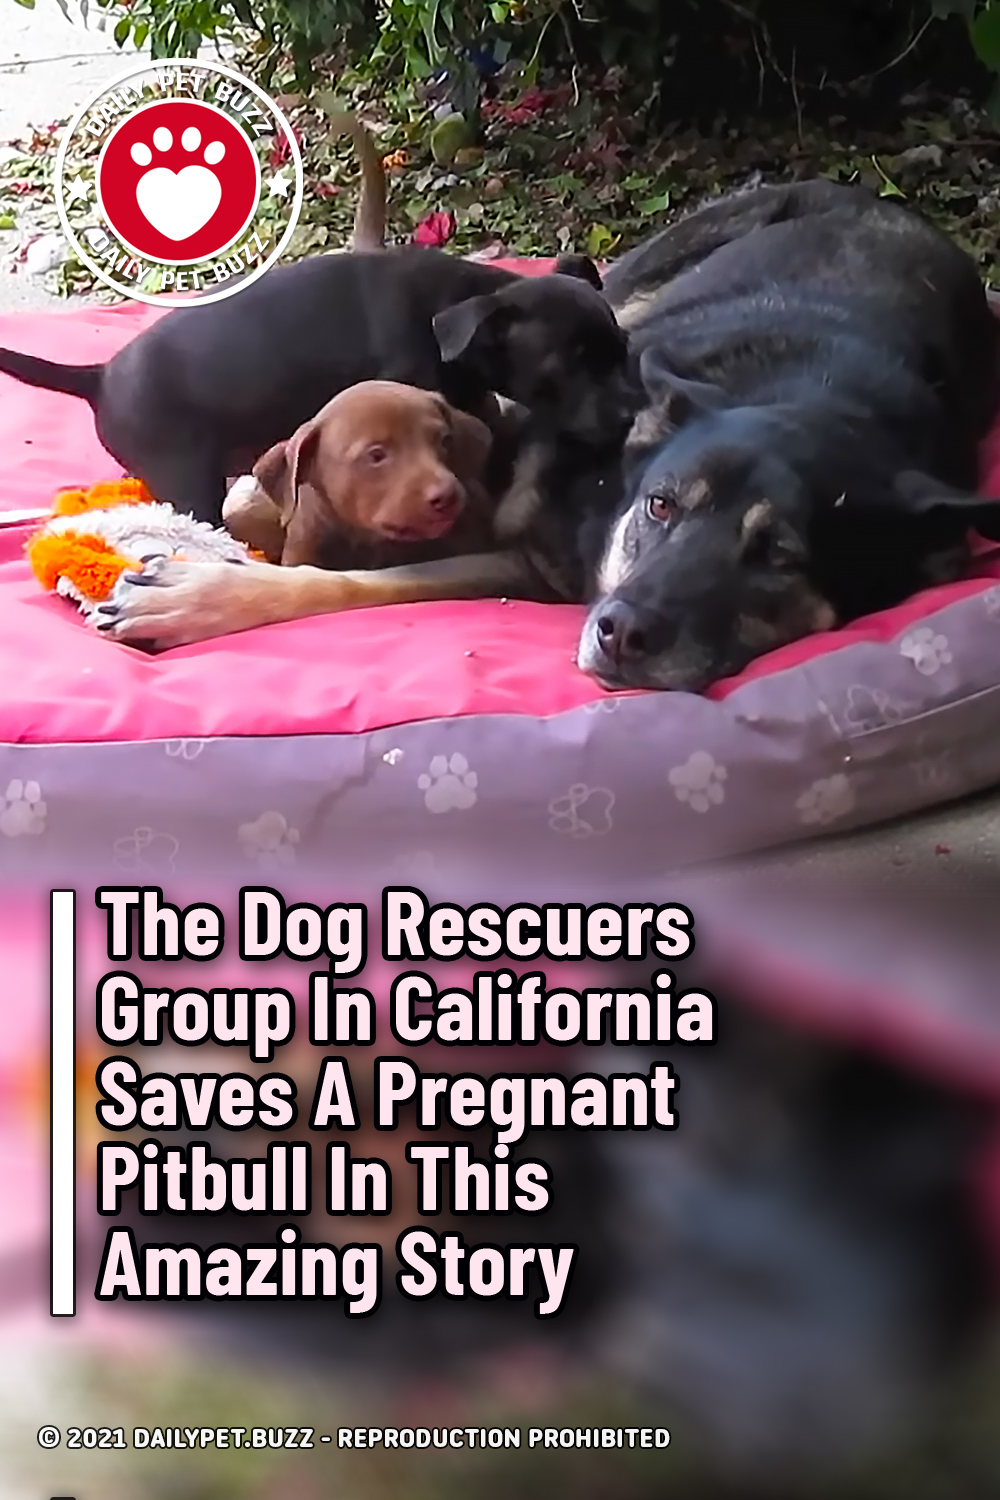 The Dog Rescuers Group In California Saves A Pregnant Pitbull In This Amazing Story